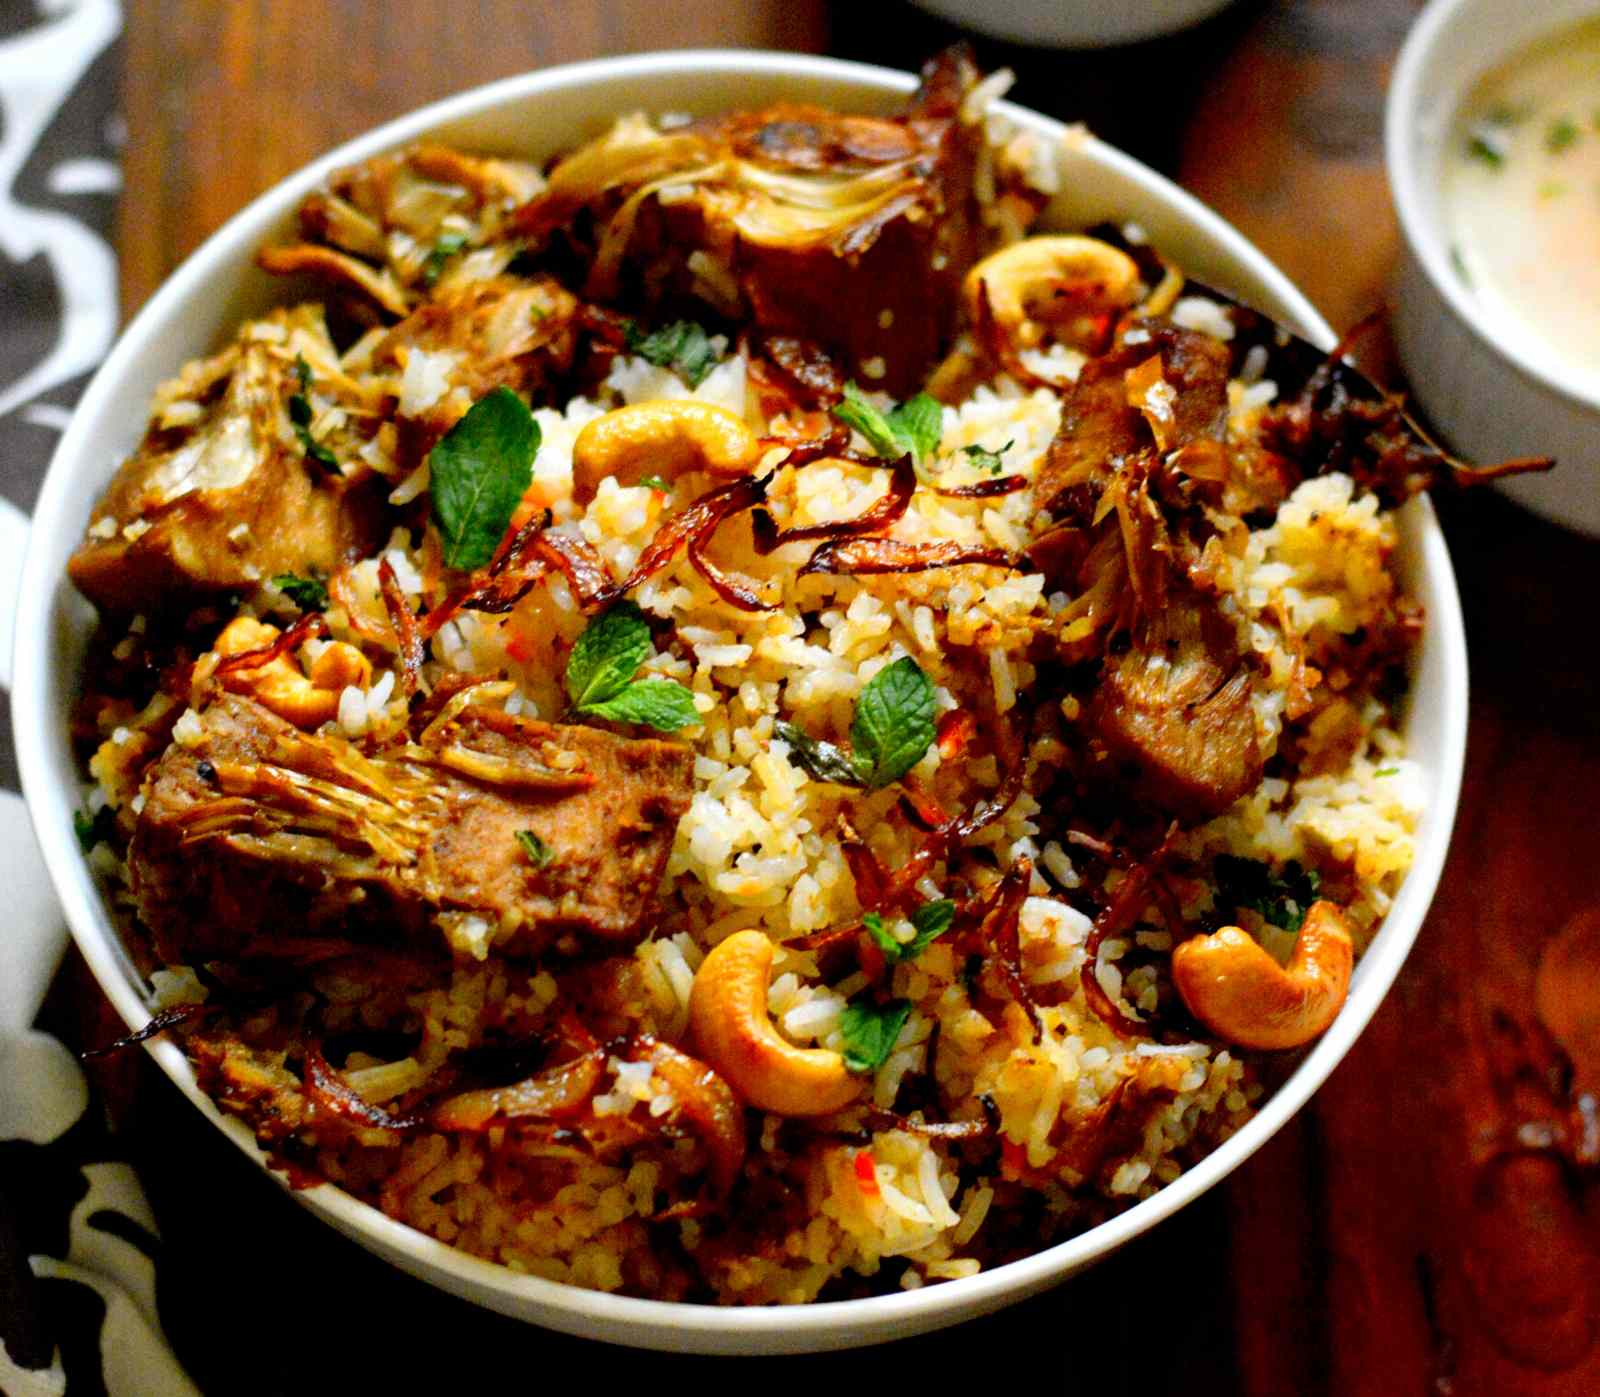 Kathal Biryani Recipe- Raw Jackfruit Biryani Topped with Caramelised Onions